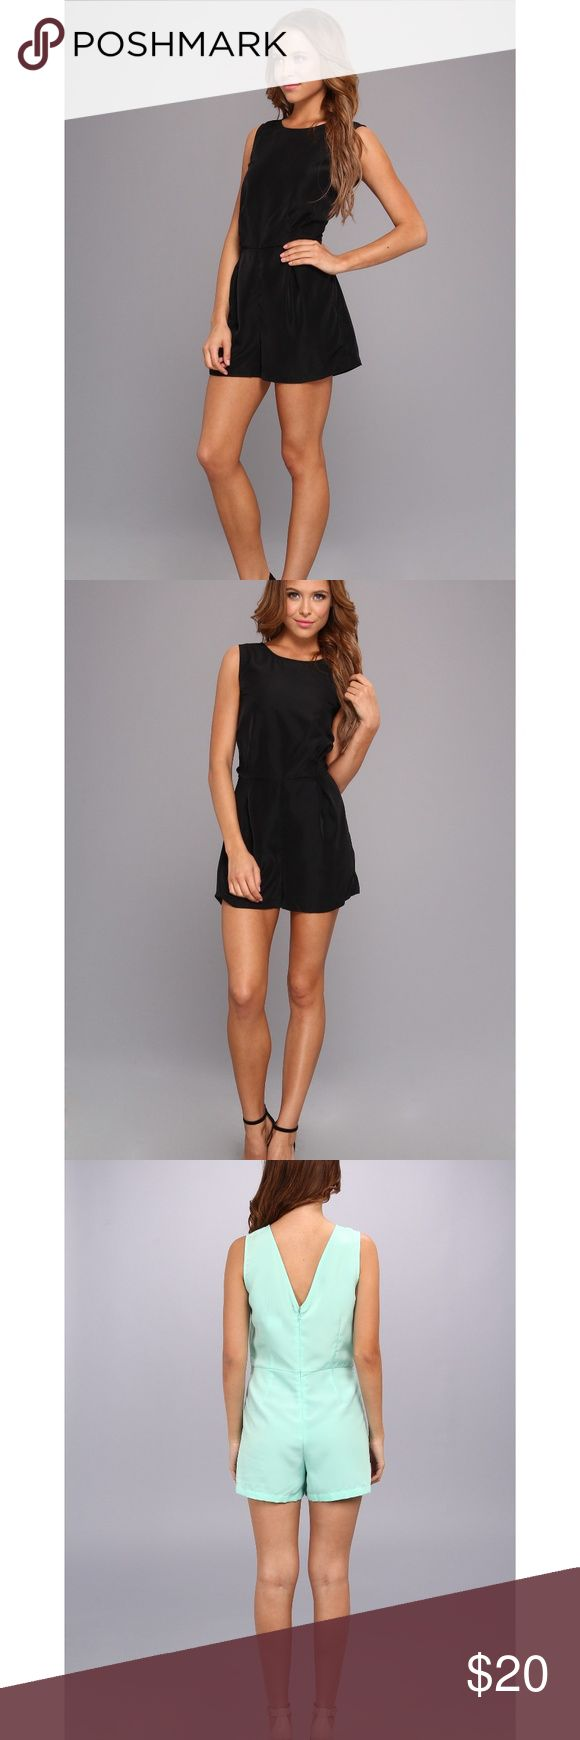 Jack BB Dakota Women's Black Ester Romper Jack BB Dakota Women's Black Ester Romper  Size 4  Roomy fit, may fit size 4-6. In great condition, only worn once, looks like new.   Willing to negotiate on item. Jack by BB Dakota Pants Jumpsuits & Rompers